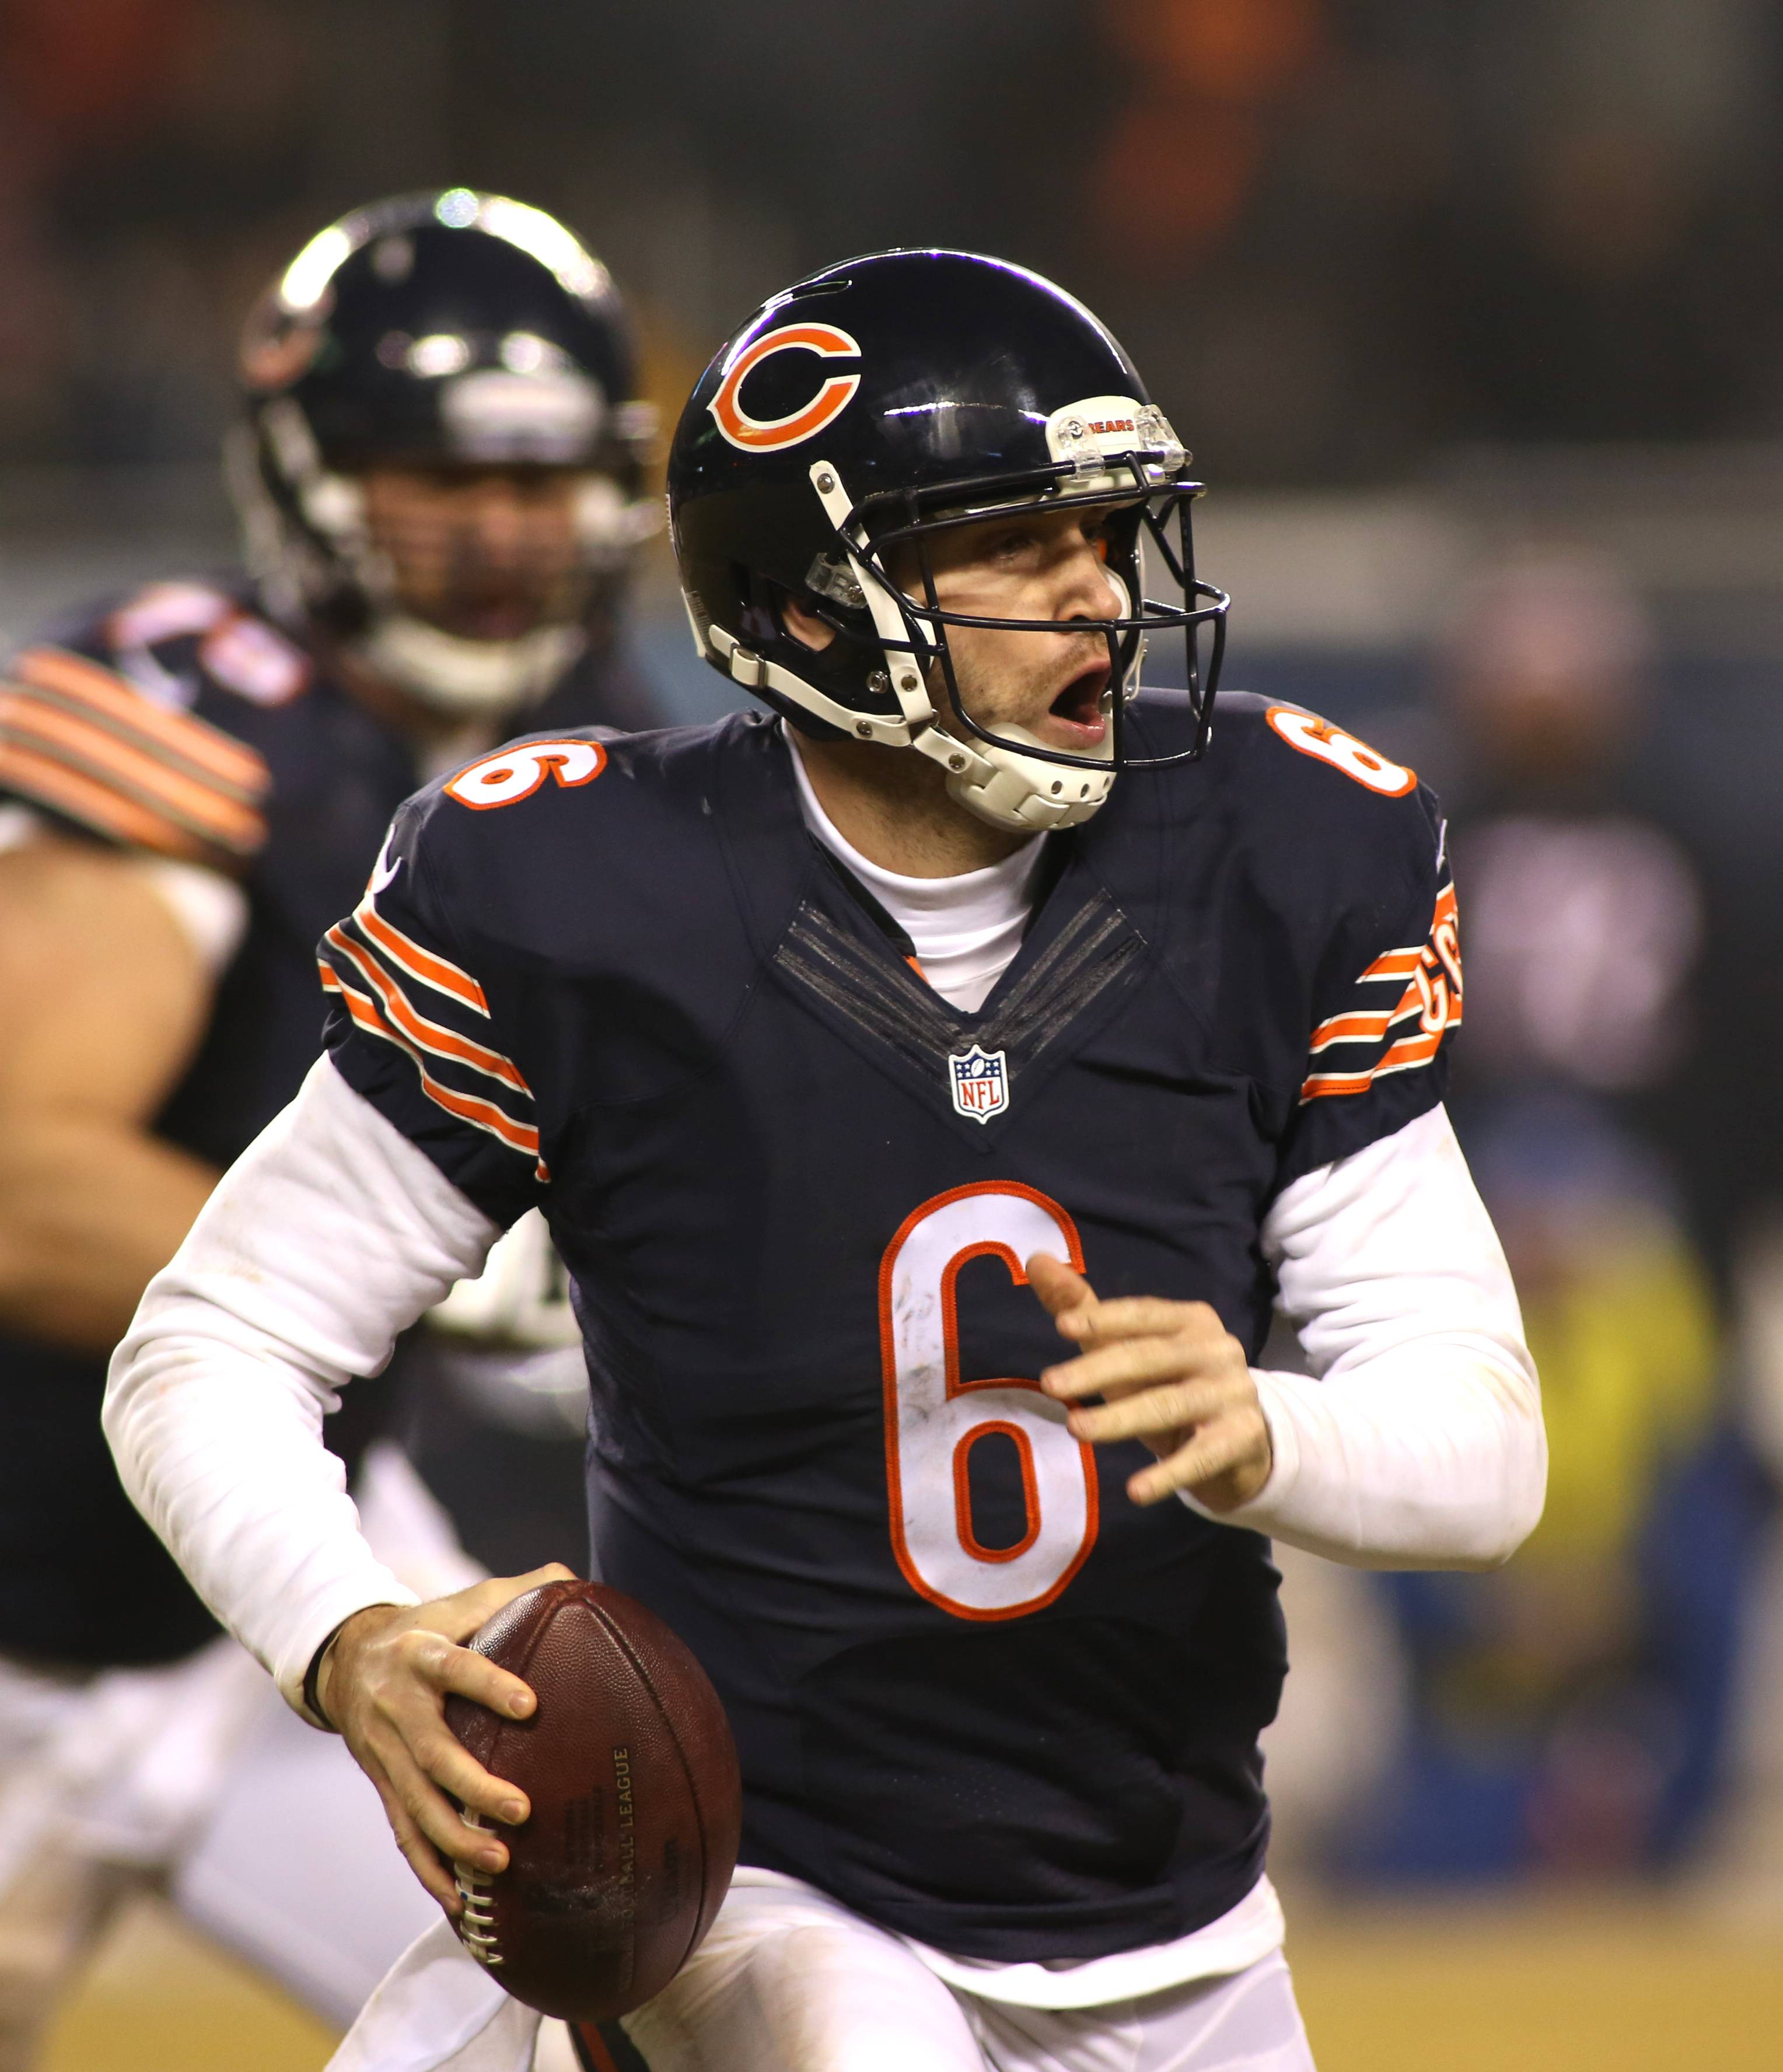 Rozner: Bears' Cutler doing what he does best